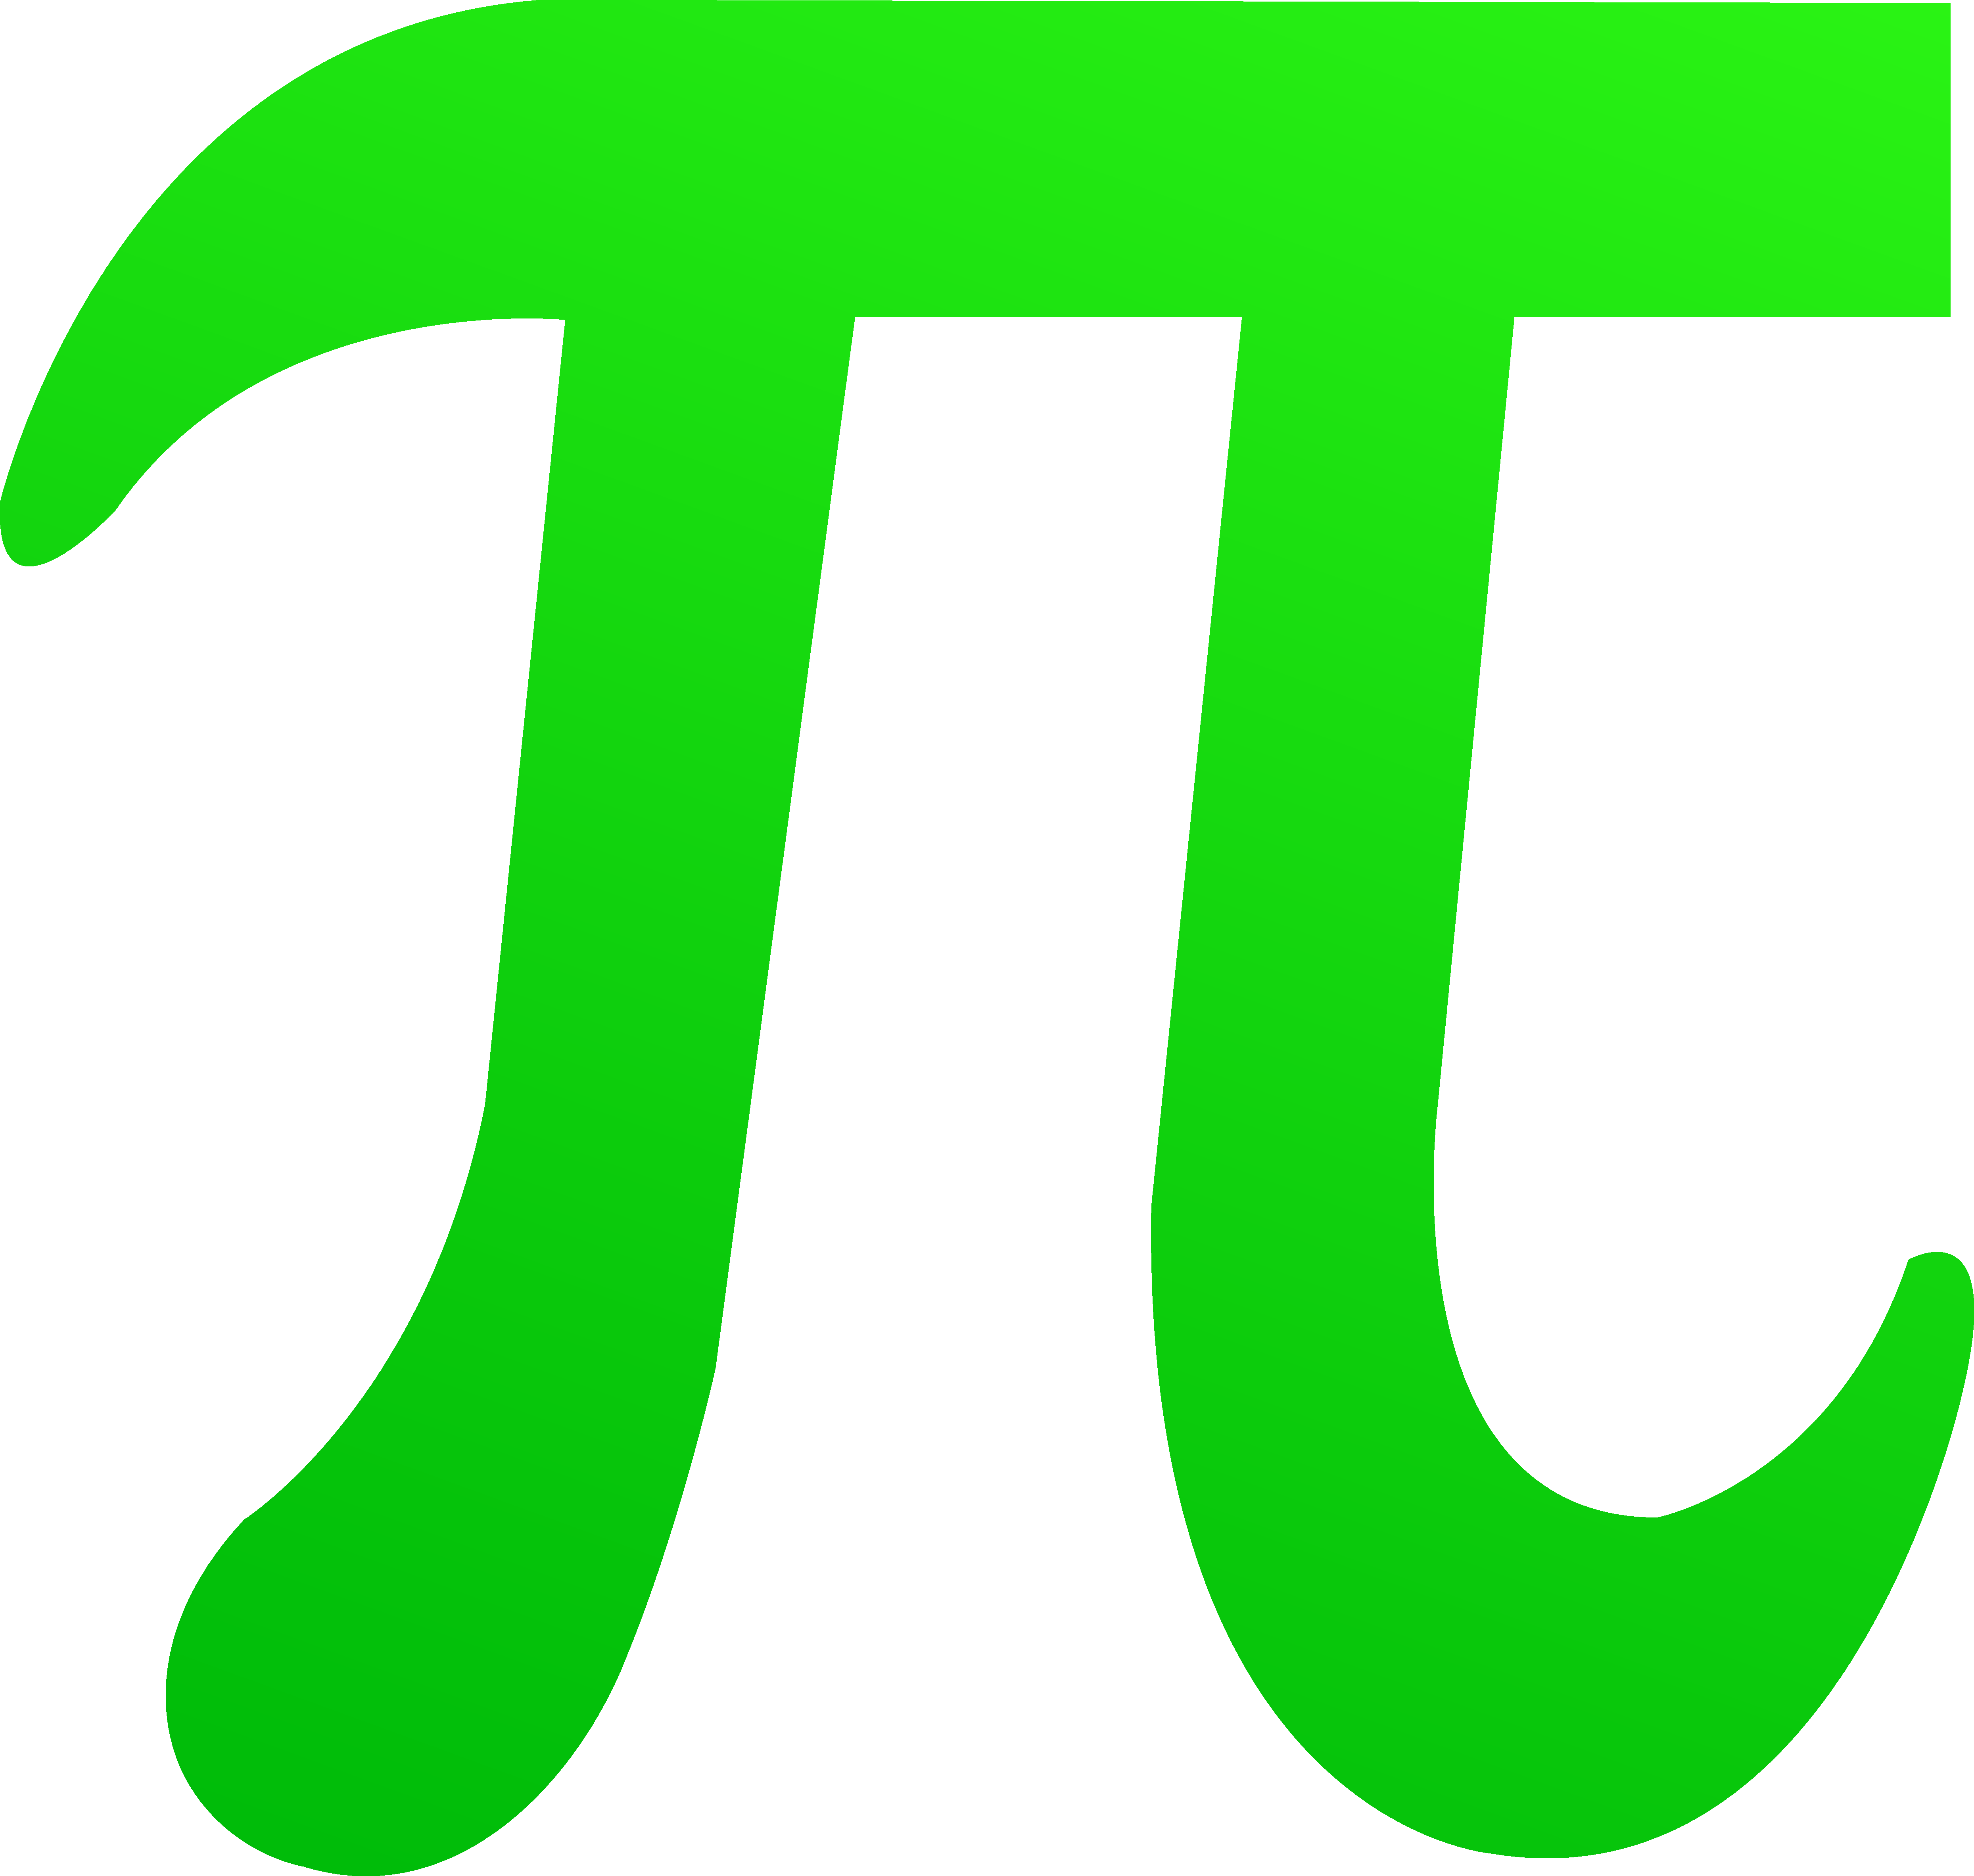 Green Pi Symbol Free clipart free image.